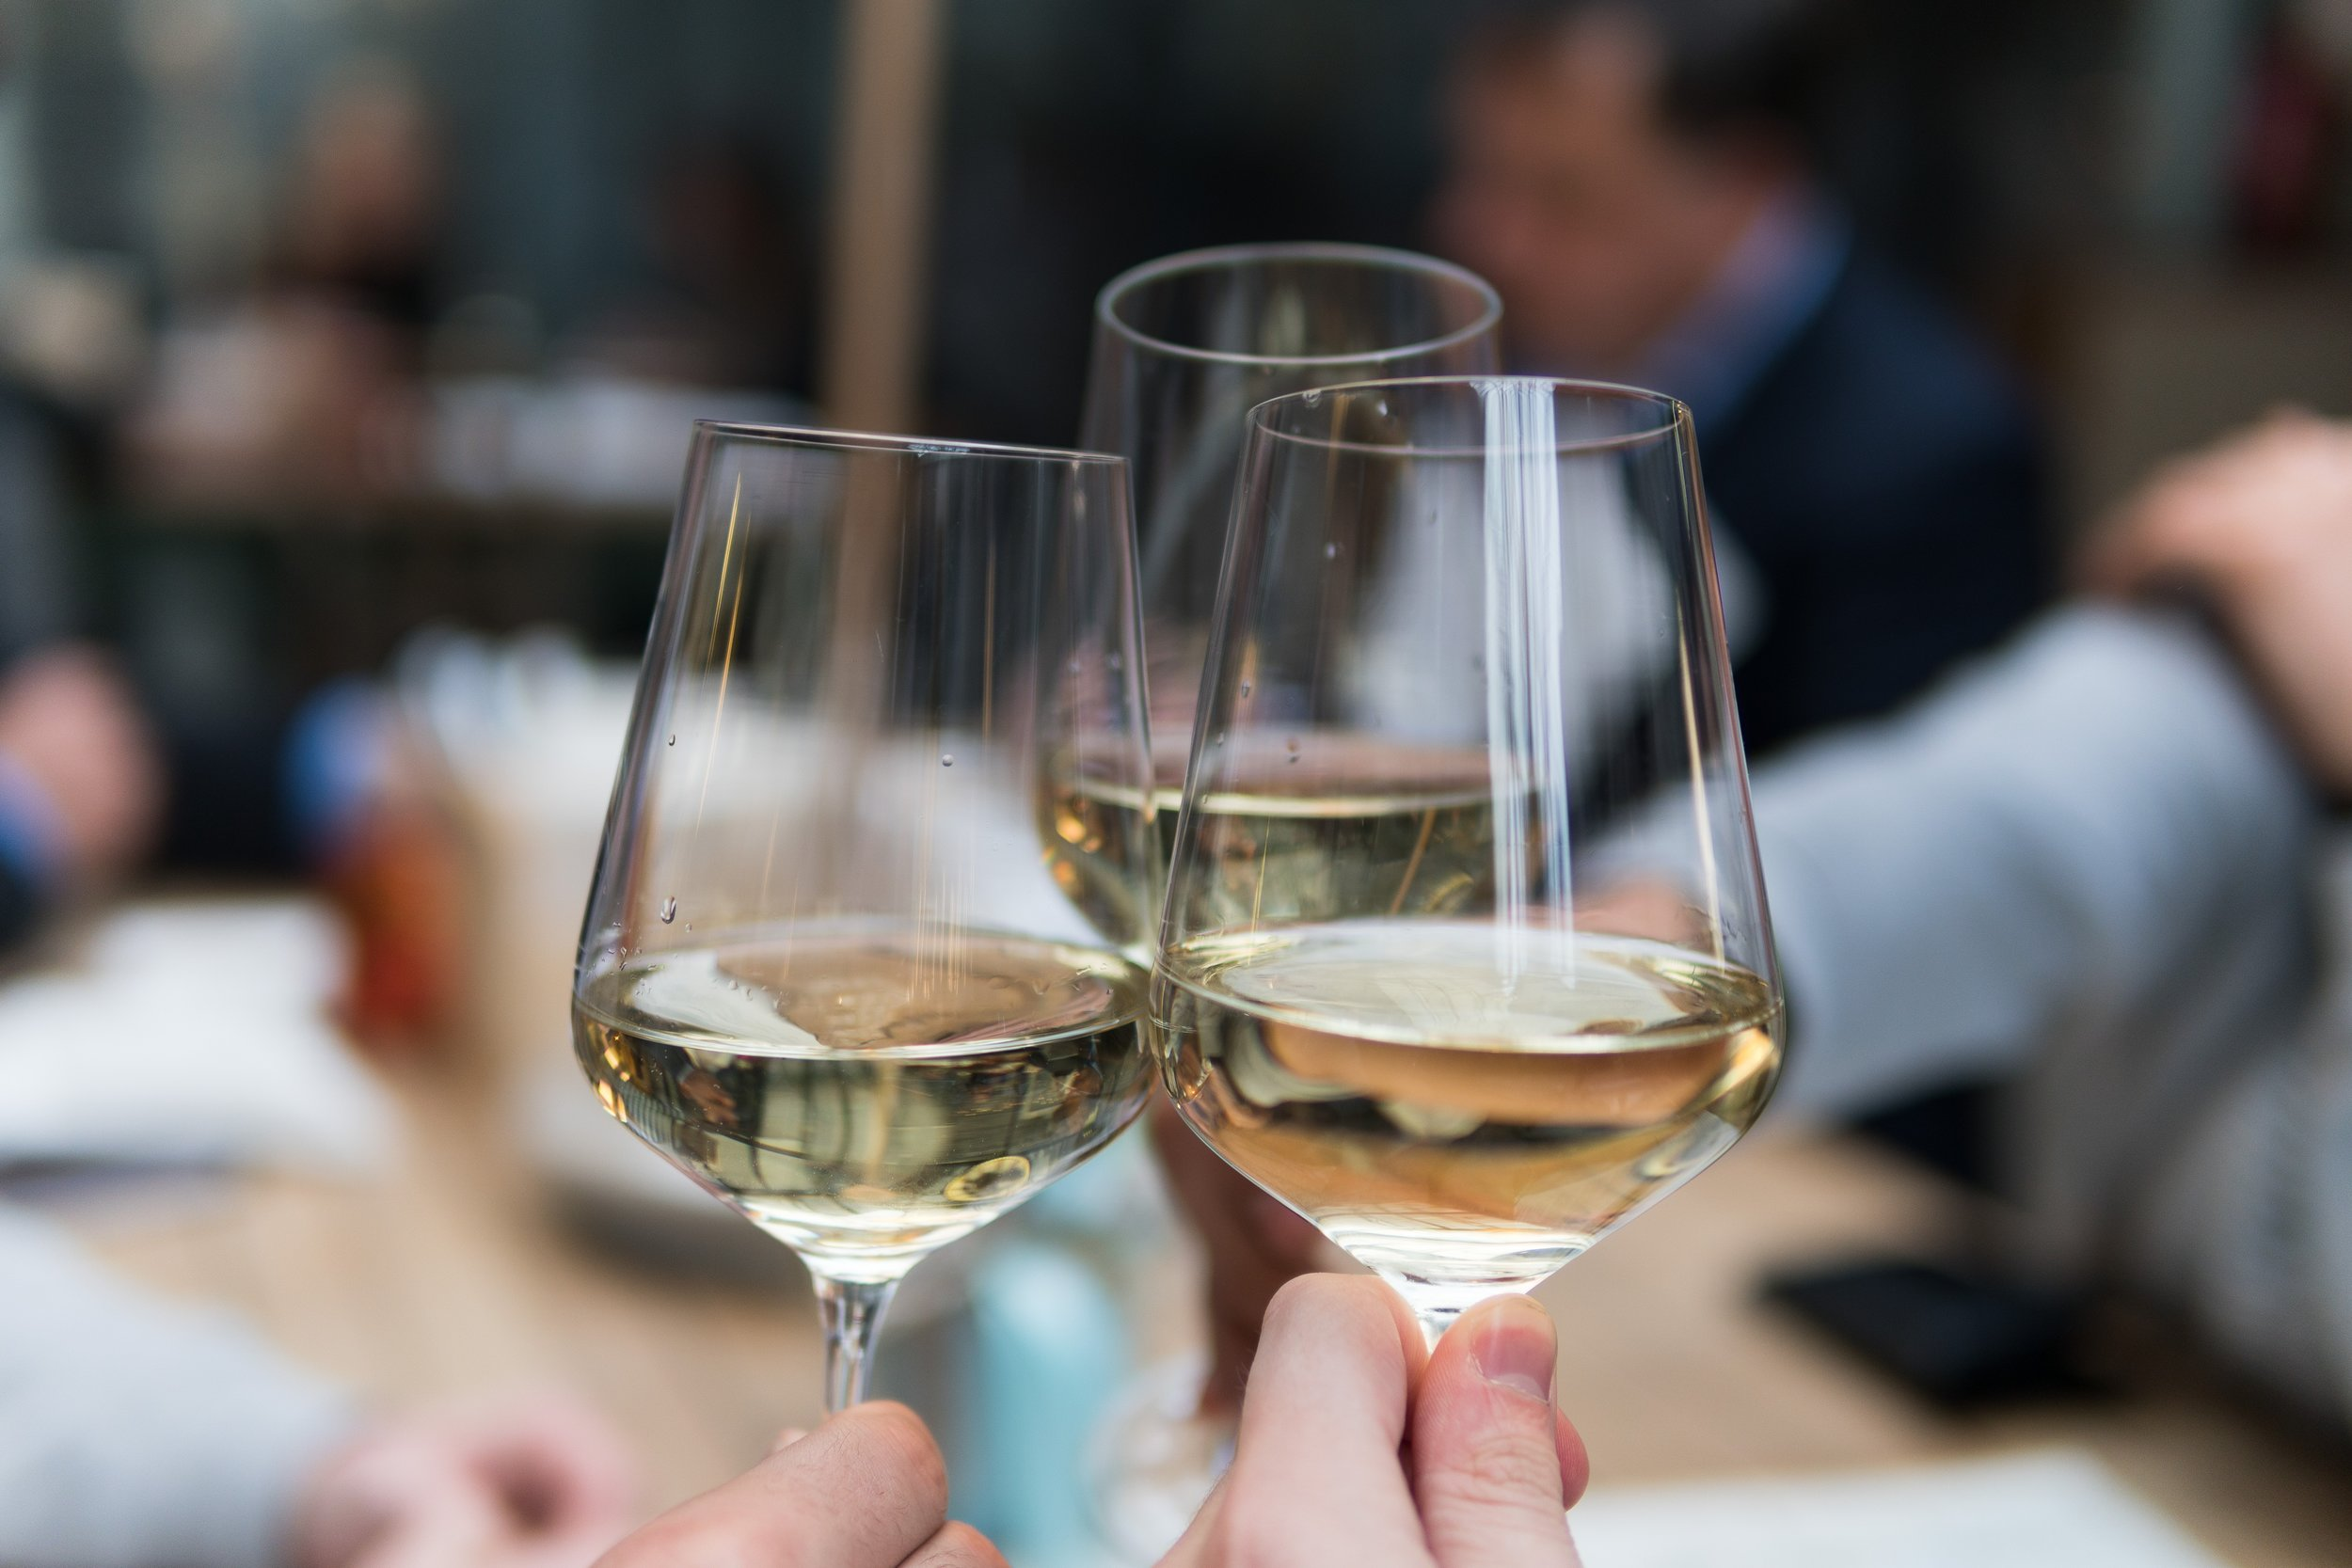 Wine tastings available at:  Shop Dog Boutique // J. Ella Boutique // Kidtopia // Amavo // Belle Touche Aveda // You've Been Framed // Posh Boutique // David Jones Fashions for Men and Women // Club Pilates // Rainn Salon // Oh My Cupcakes!